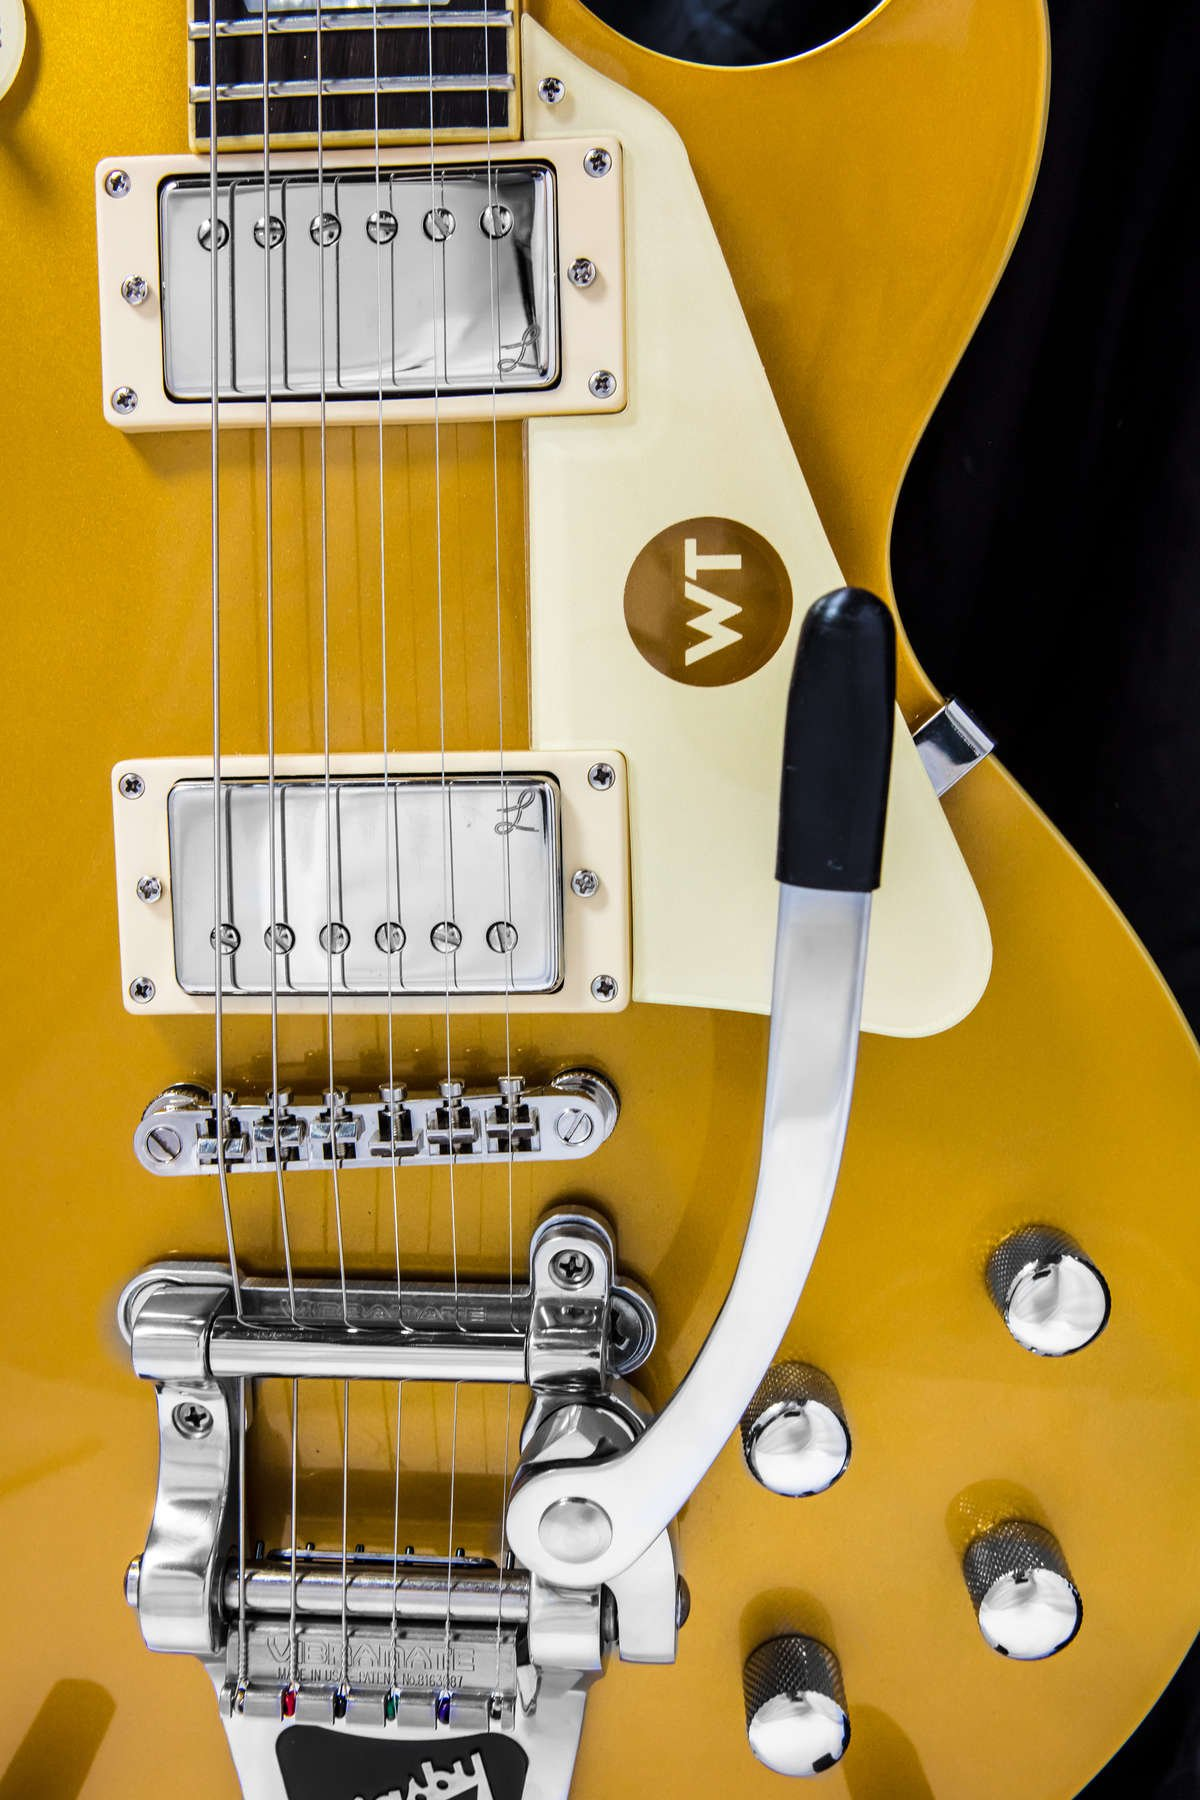 Upgrade Your Tone 920d Custom Diagrams Further You Need To Enable Javascript On Electric Guitar Hsh Vibrato Installation